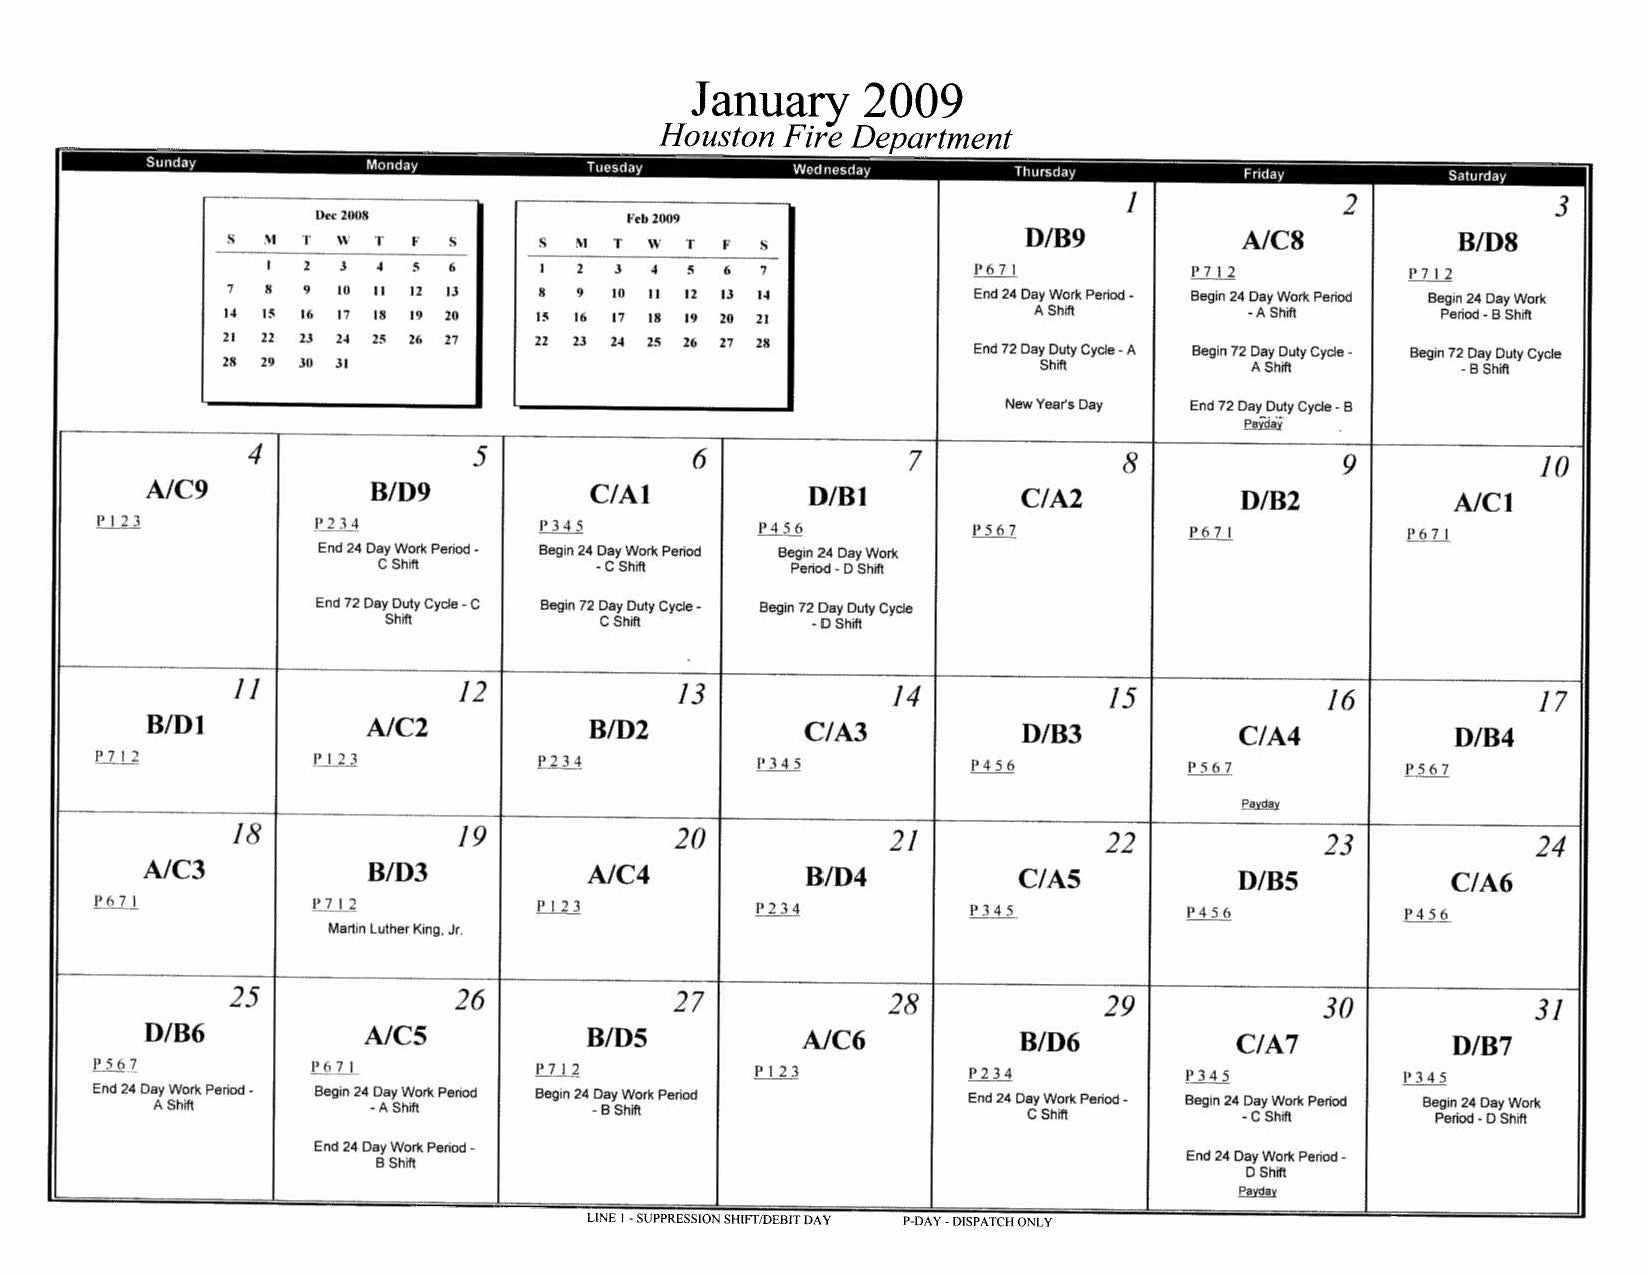 Hfd 2009 Suppression Shift Calendar By Capcuervo Issuu